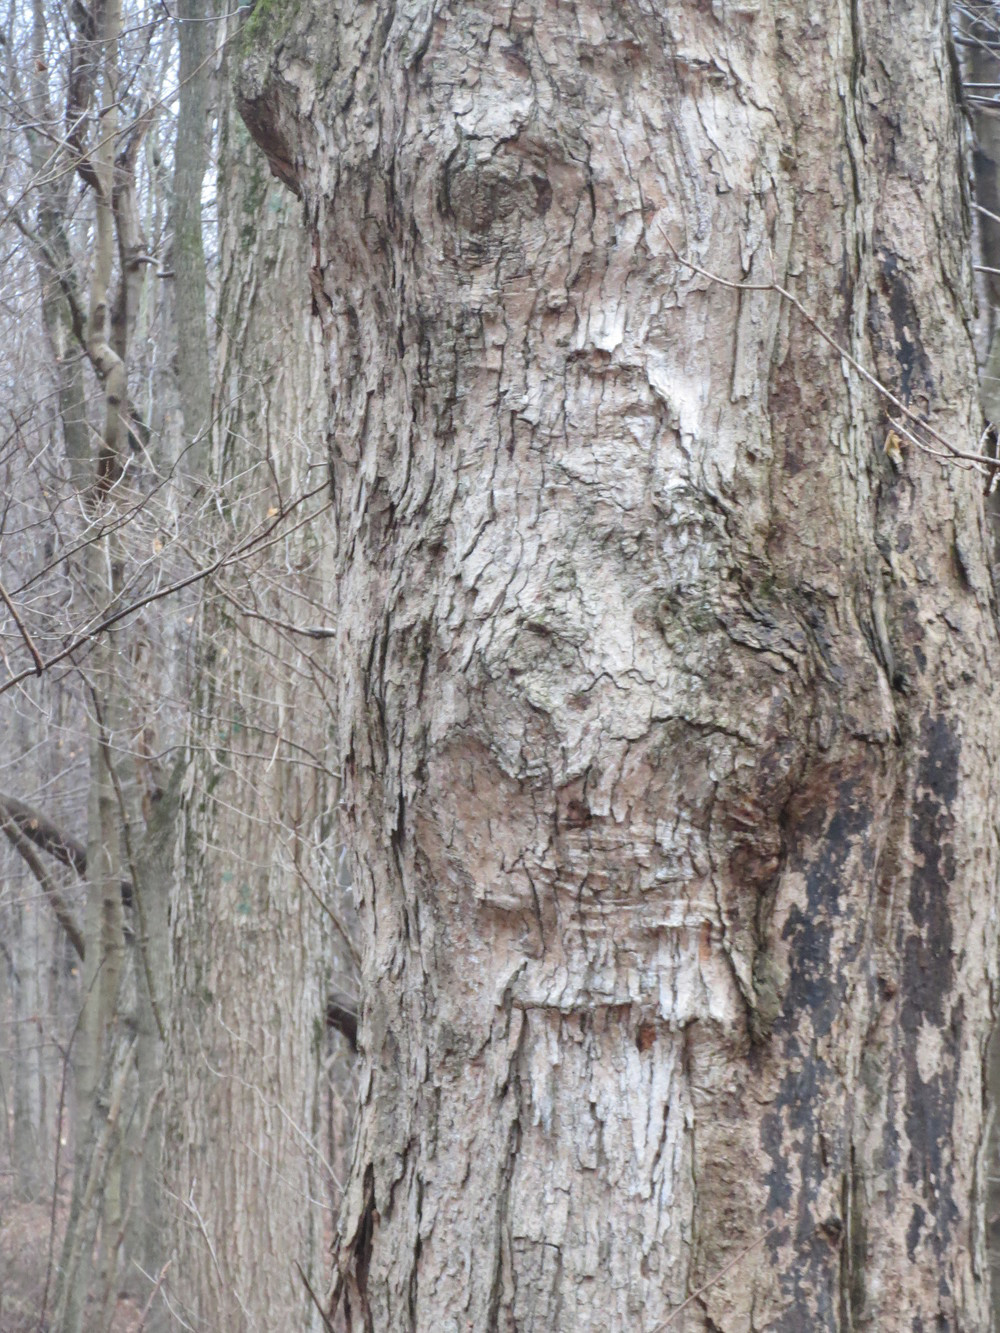 FACE OF GOD: THE FACE OF GOD IS EVERYWHERE, especially in trees.